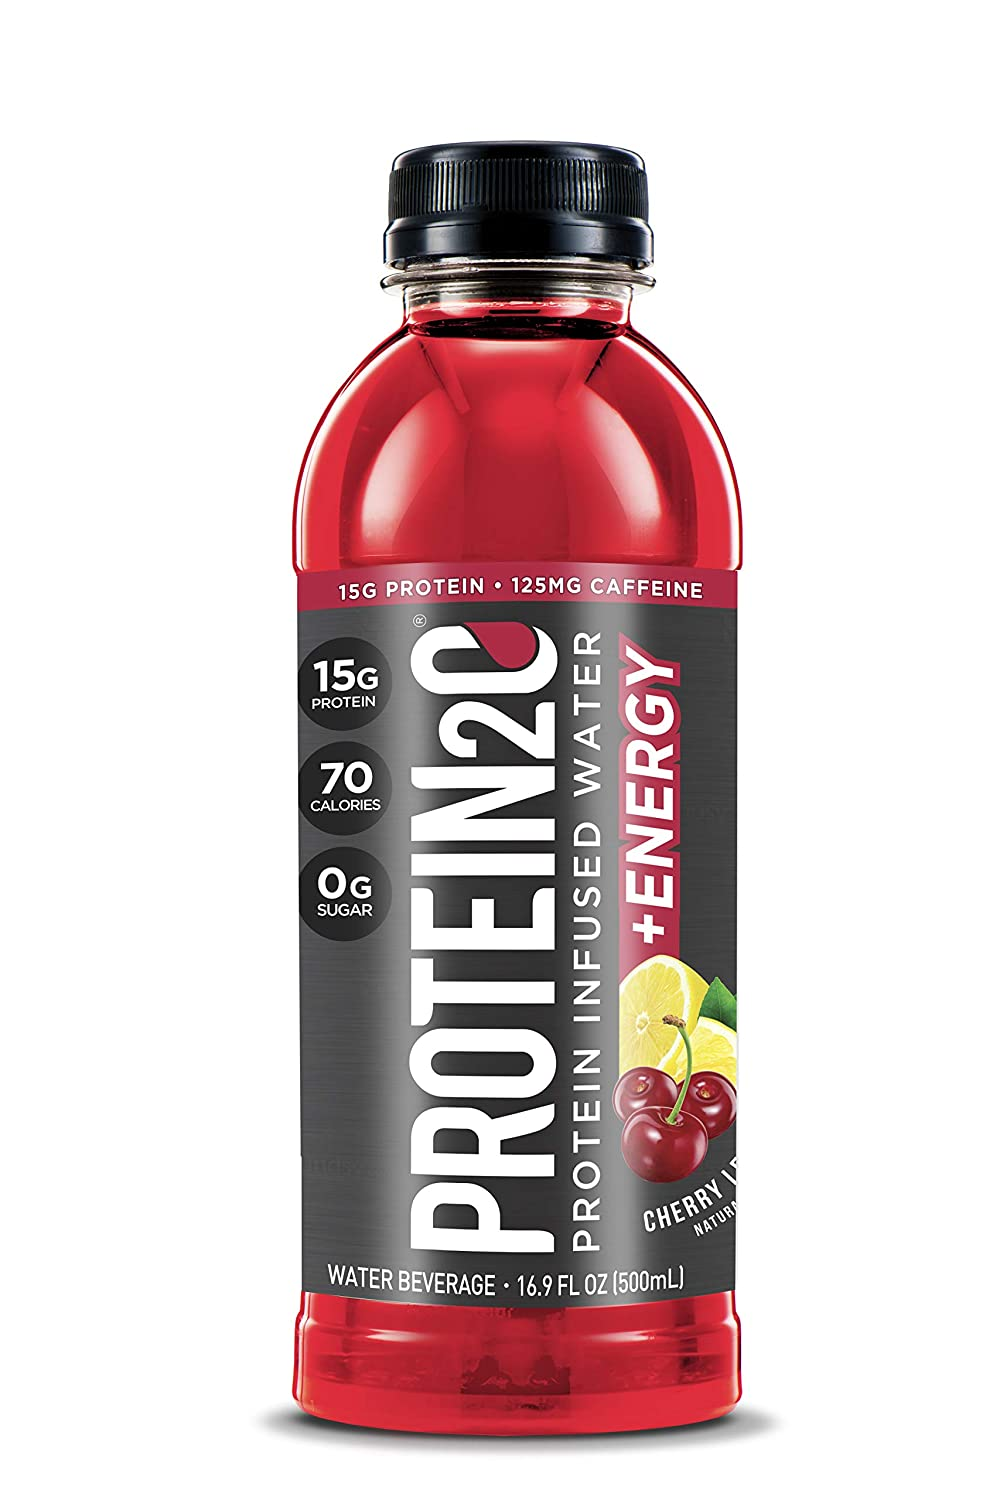 Protein2o + Energy, Low Calorie Protein Infused Water, 15g Whey Protein Isolate, Cherry Lemonade, (Pack of 12)